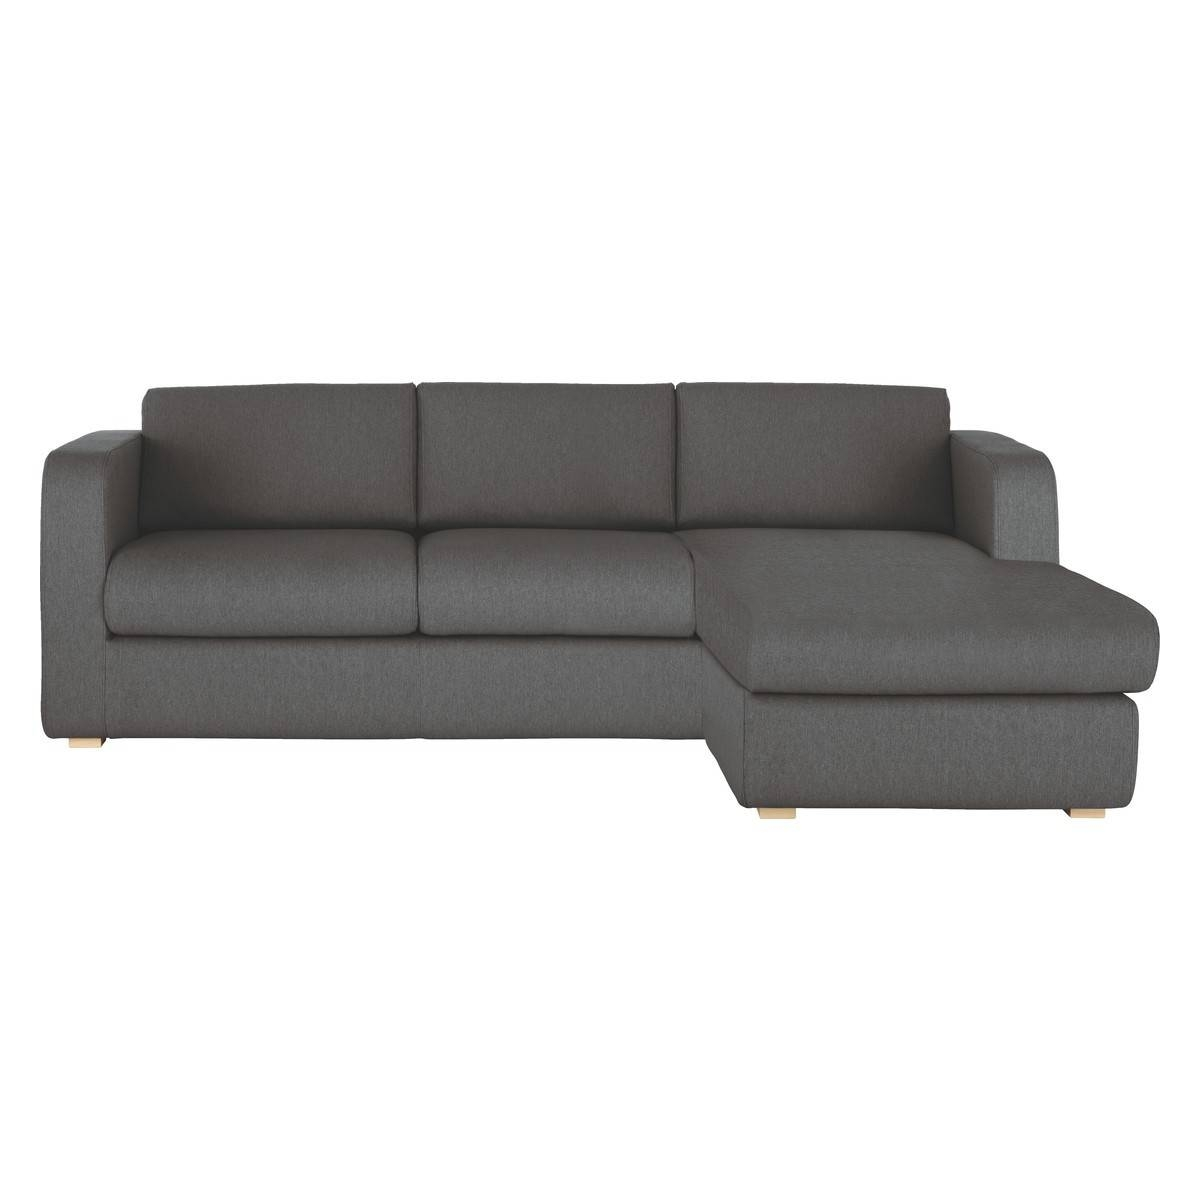 Corner Sofas; Leather & Fabric L-Shaped Styles - Habitat intended for L Shaped Fabric Sofas (Image 8 of 30)